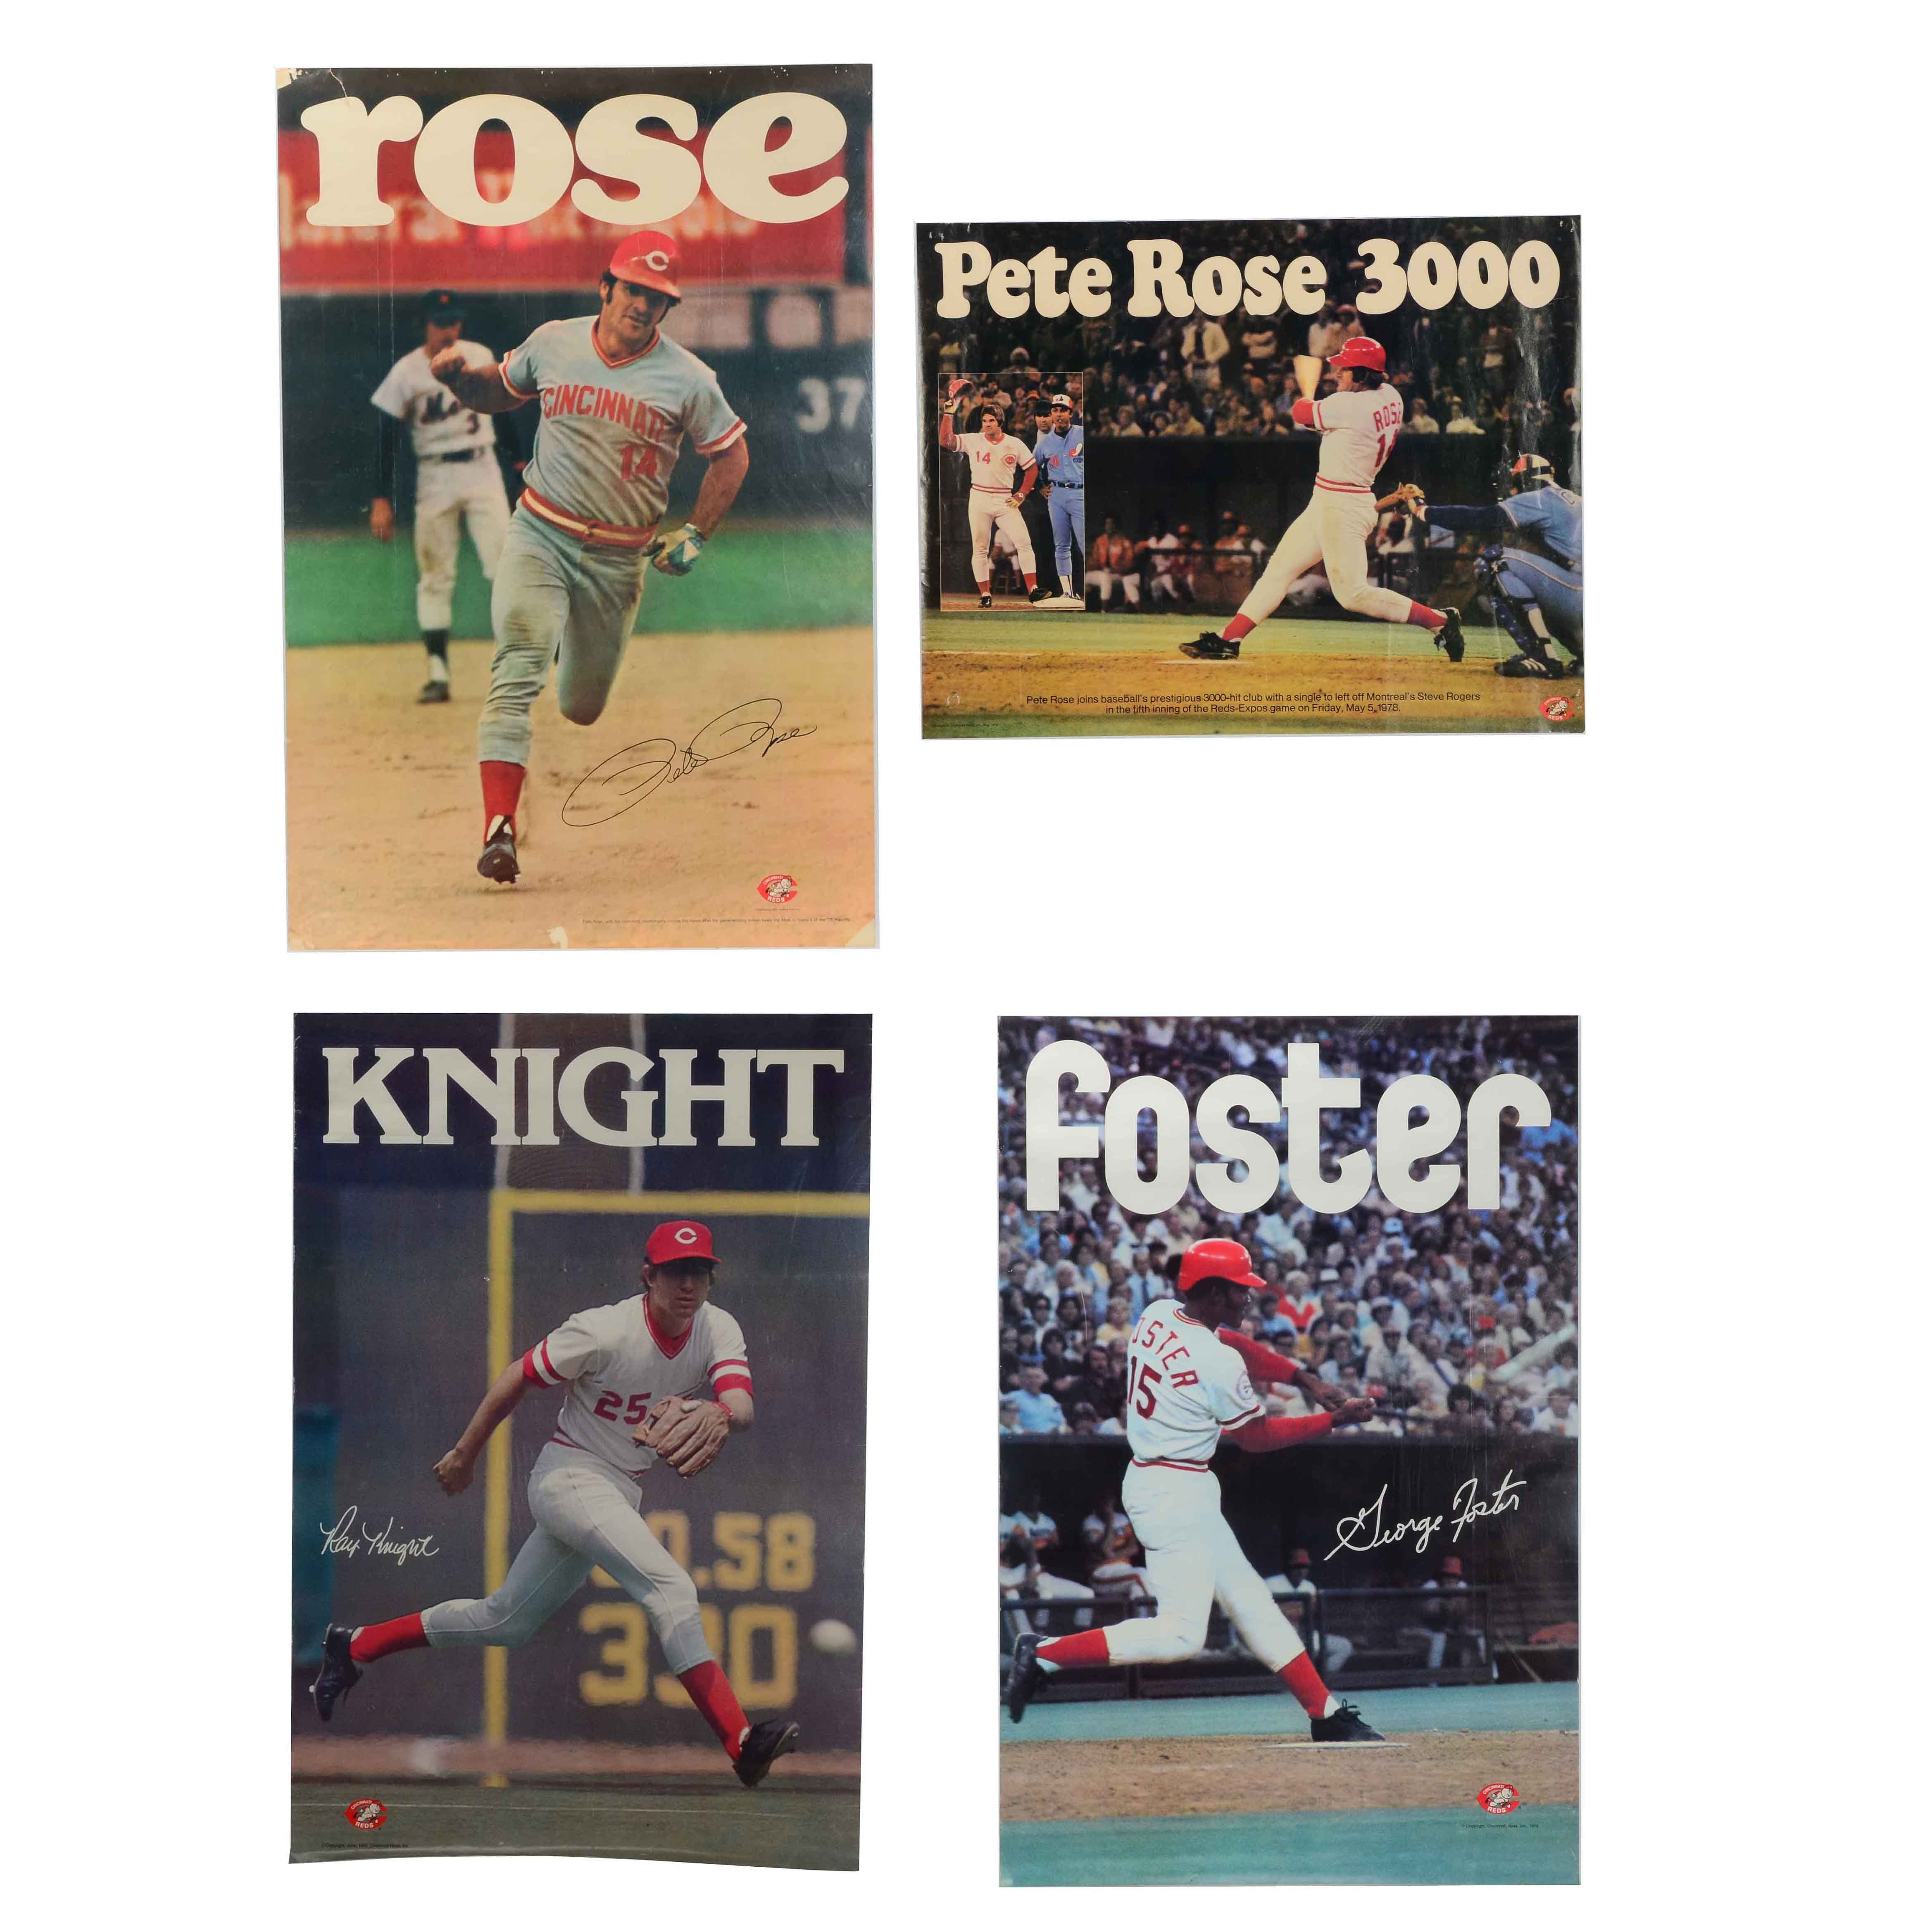 Rose, Foster, Knight Reds Baseball Posters